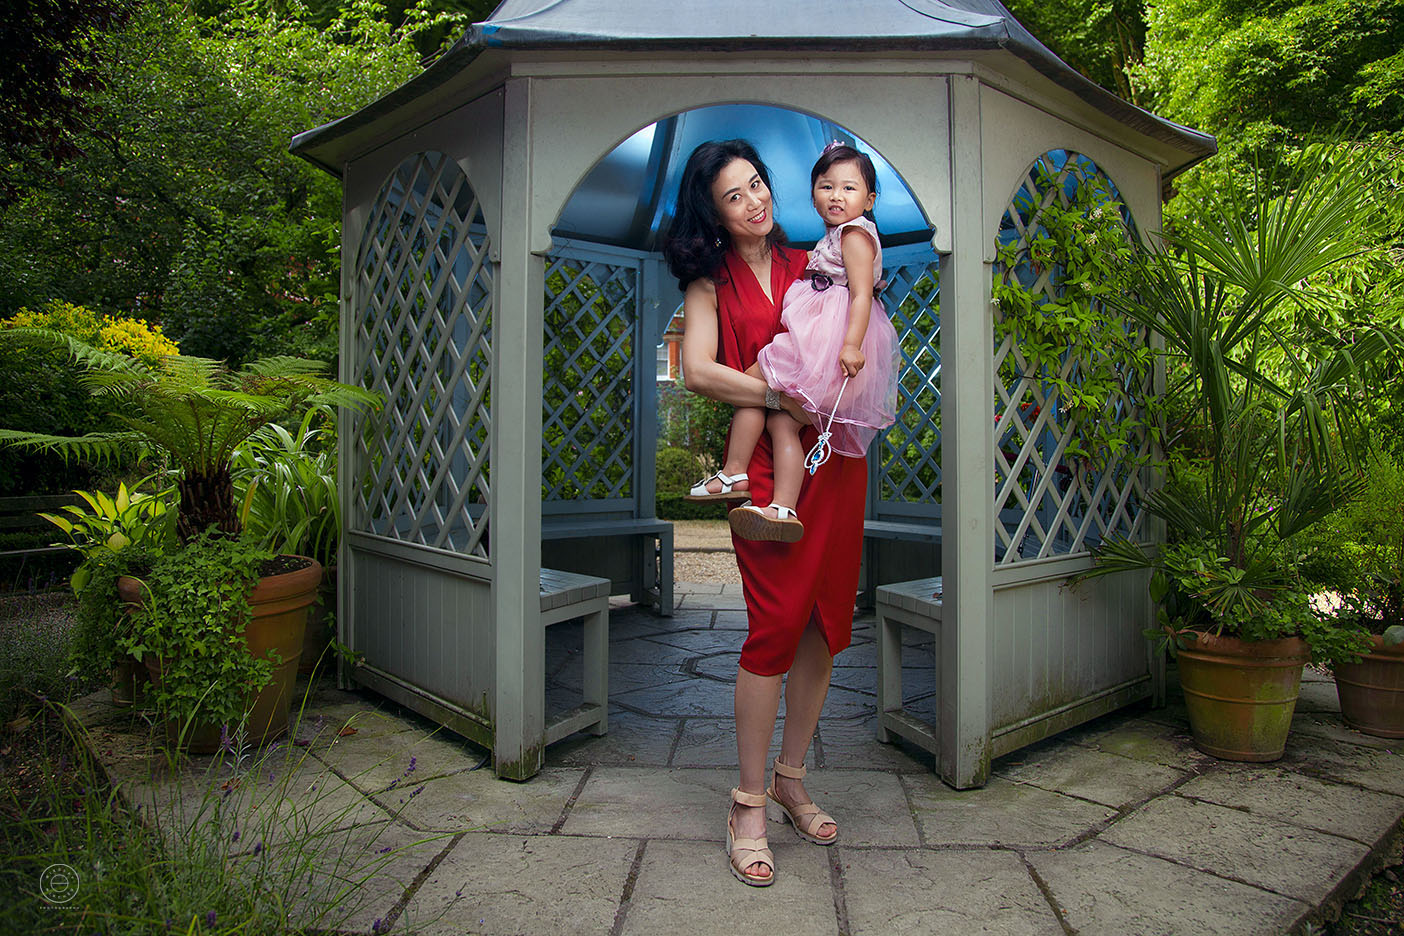 Family portrait session in South West London - mum holds her little daughter in her arms for a picture.